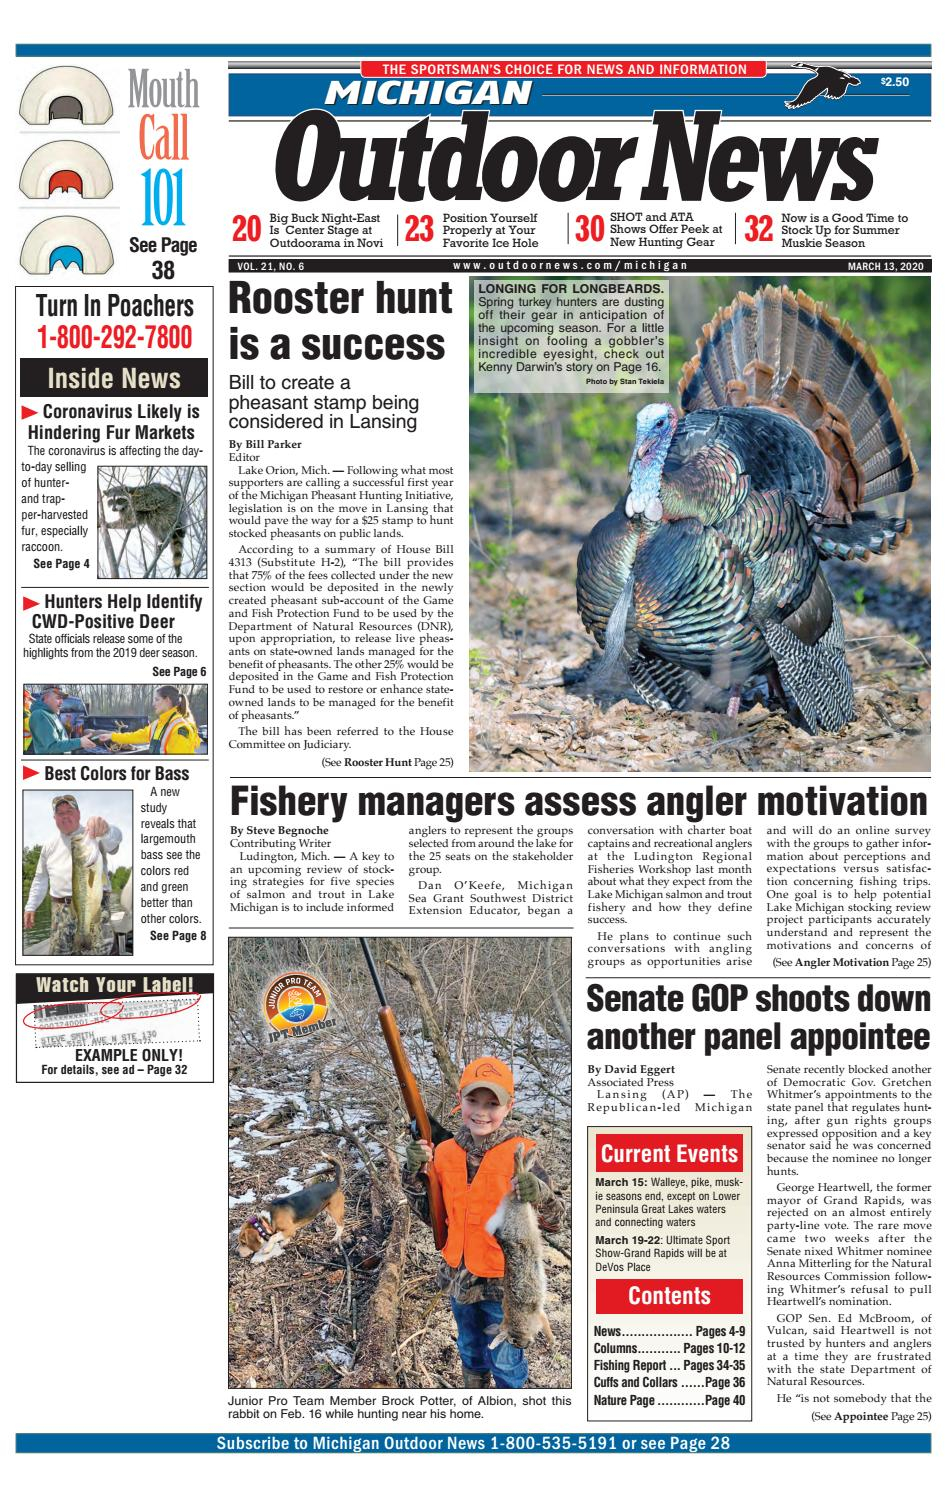 Michigan Outdoor News Issue 6 2020 By Outdoor News Issuu